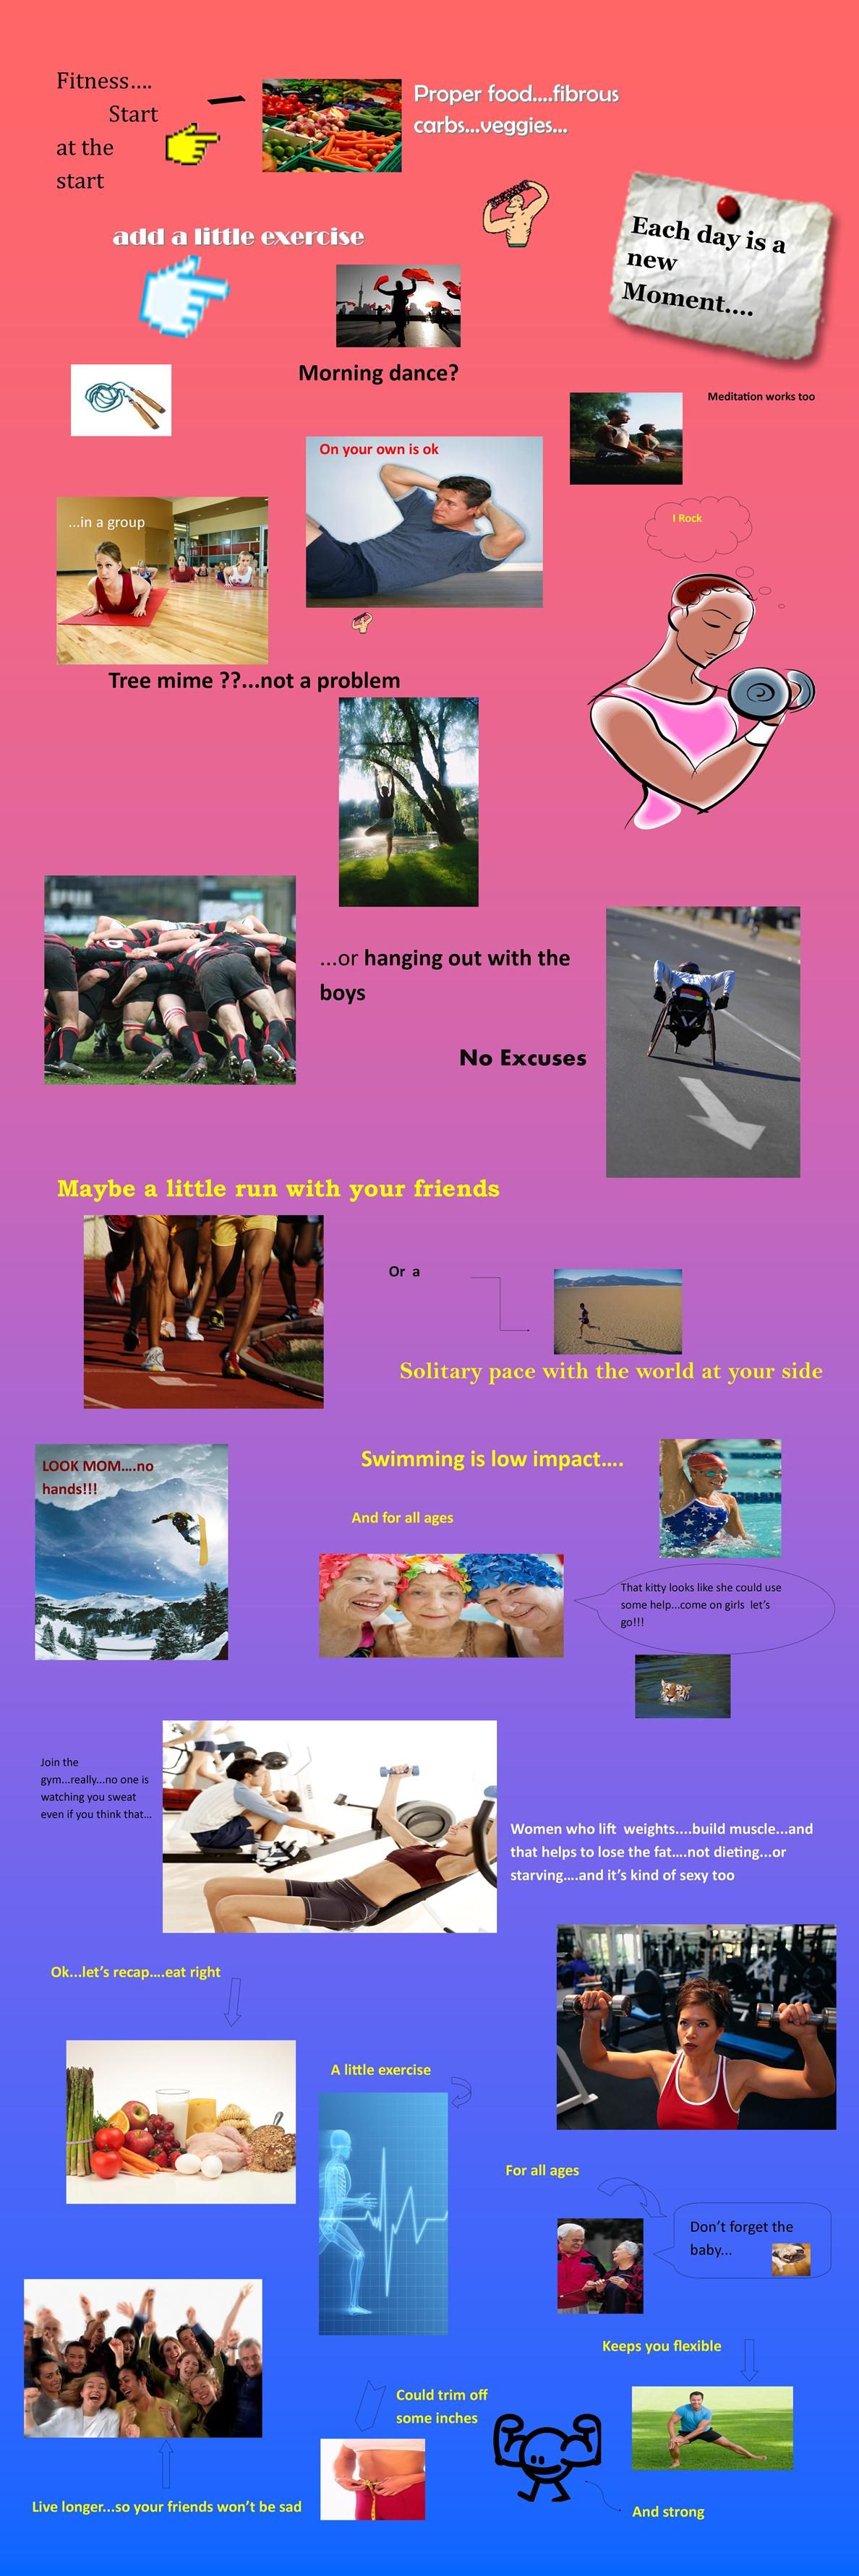 Basic Fitness With Images